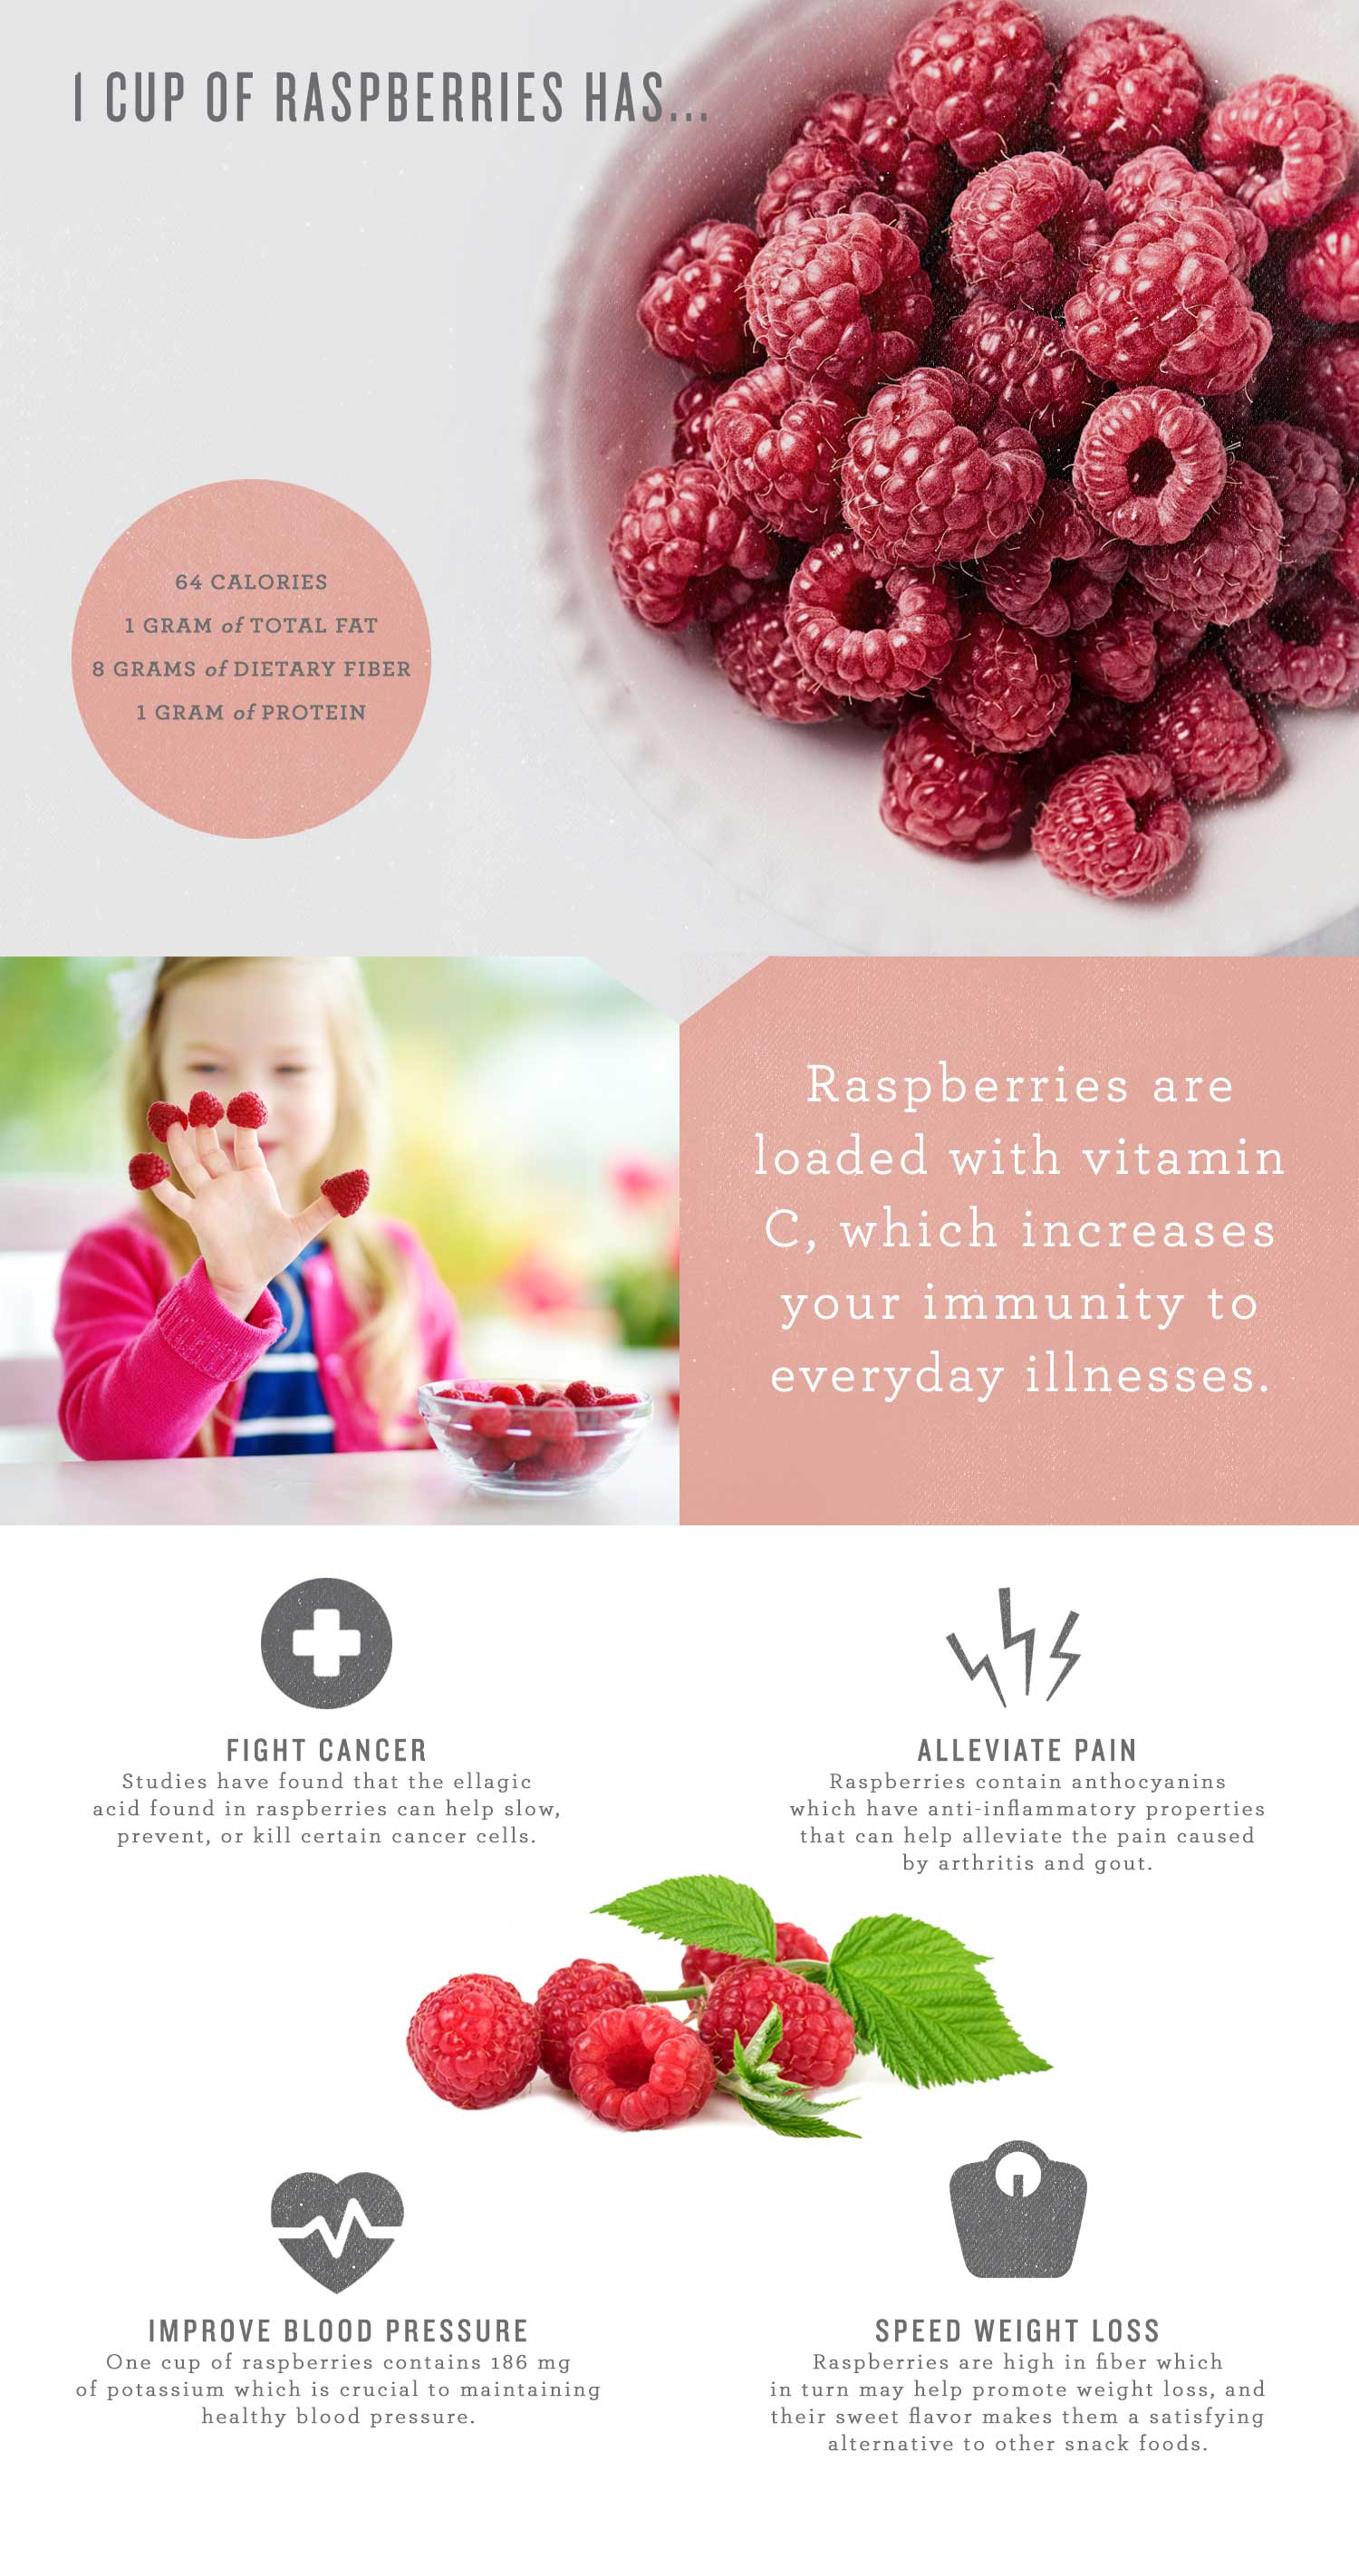 Health_Facts_Raspberries.jpg